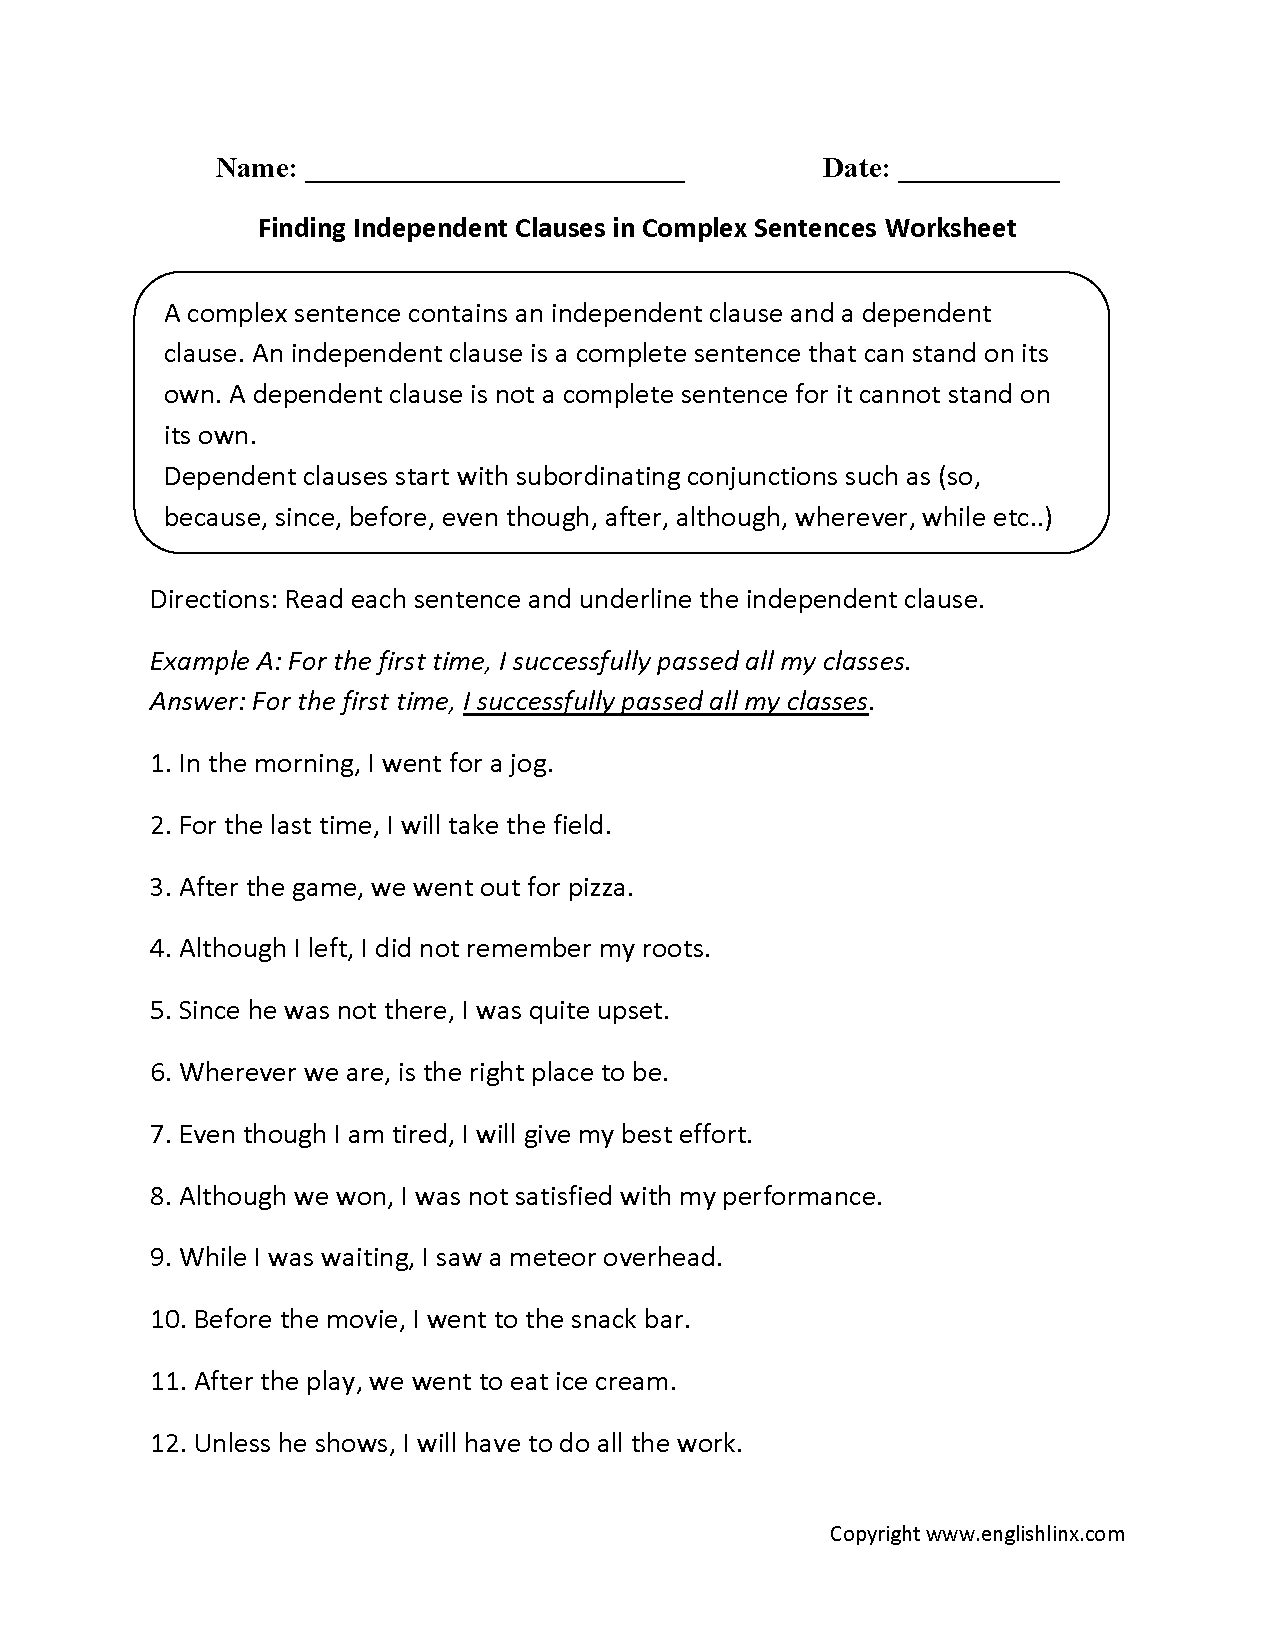 Worksheets Quiz On Types Of Sentences Simple Compound Complex Compound-complex simple compound complex and sentences worksheet worksheets worksheets